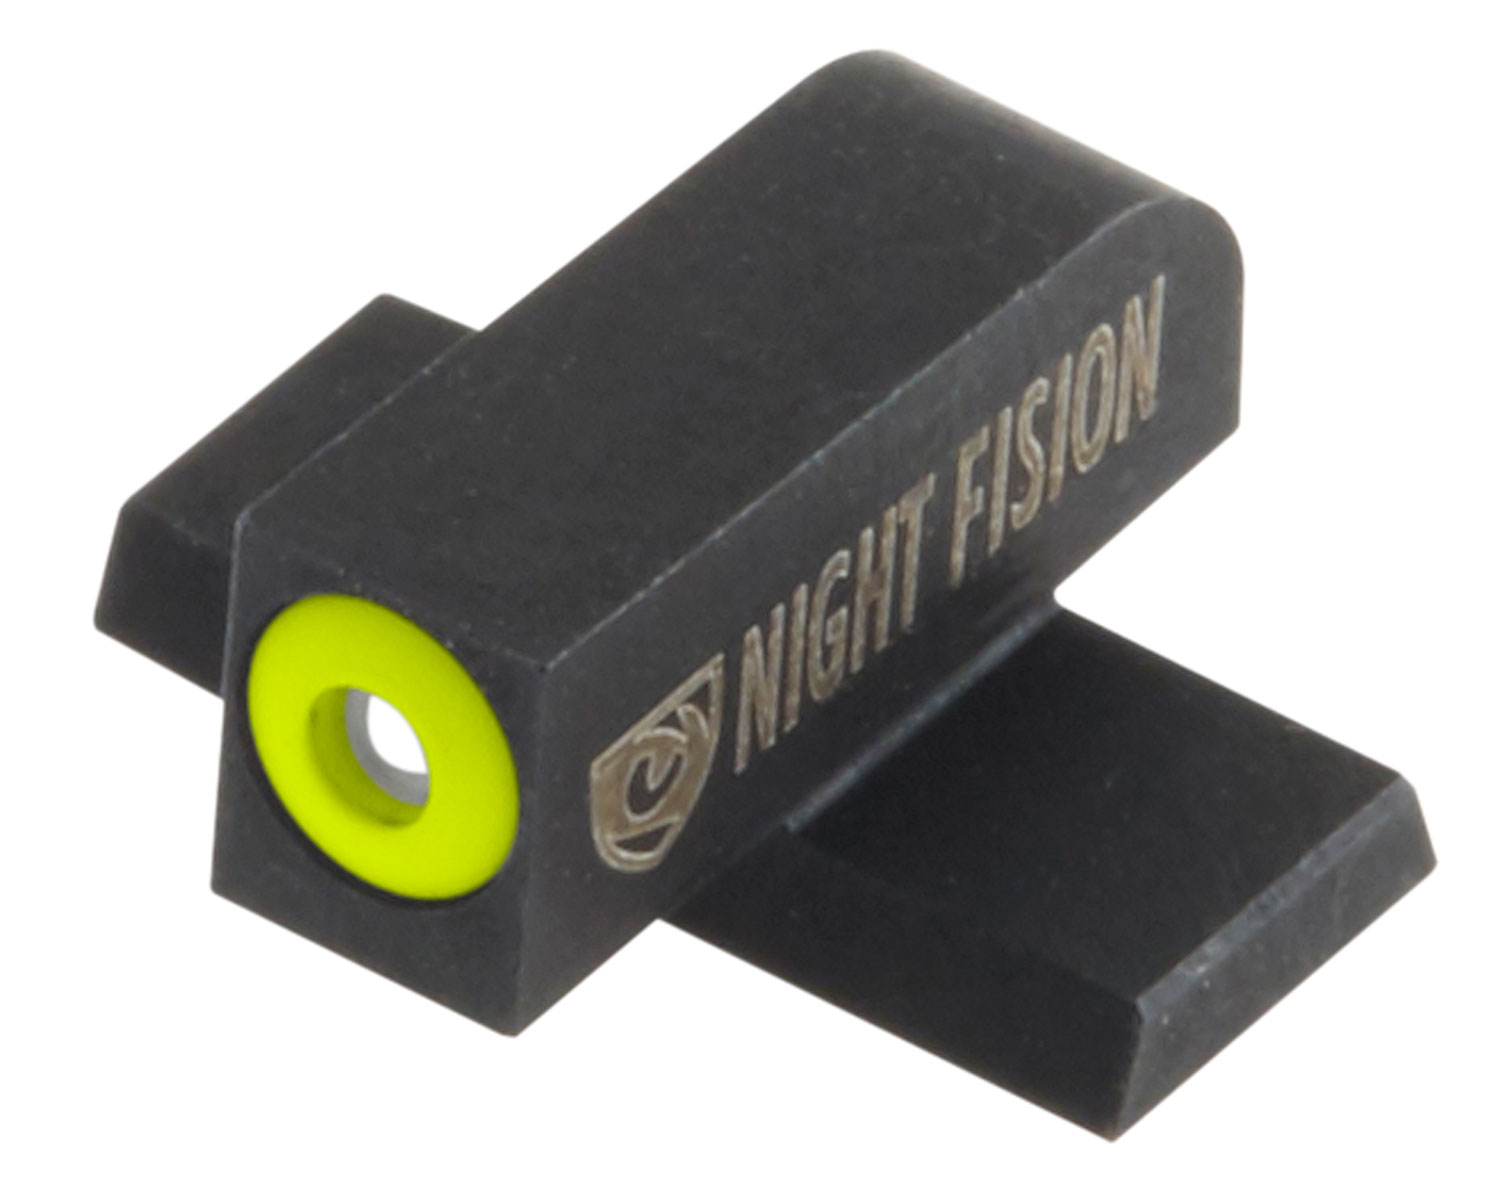 Night Fision SIG177007YGZ Night Sight Set Square Front/U-Notch Rear SIg Sauer 9mm/357 Green Tritium w/Yellow Outline #8 Front Black #8 Rear